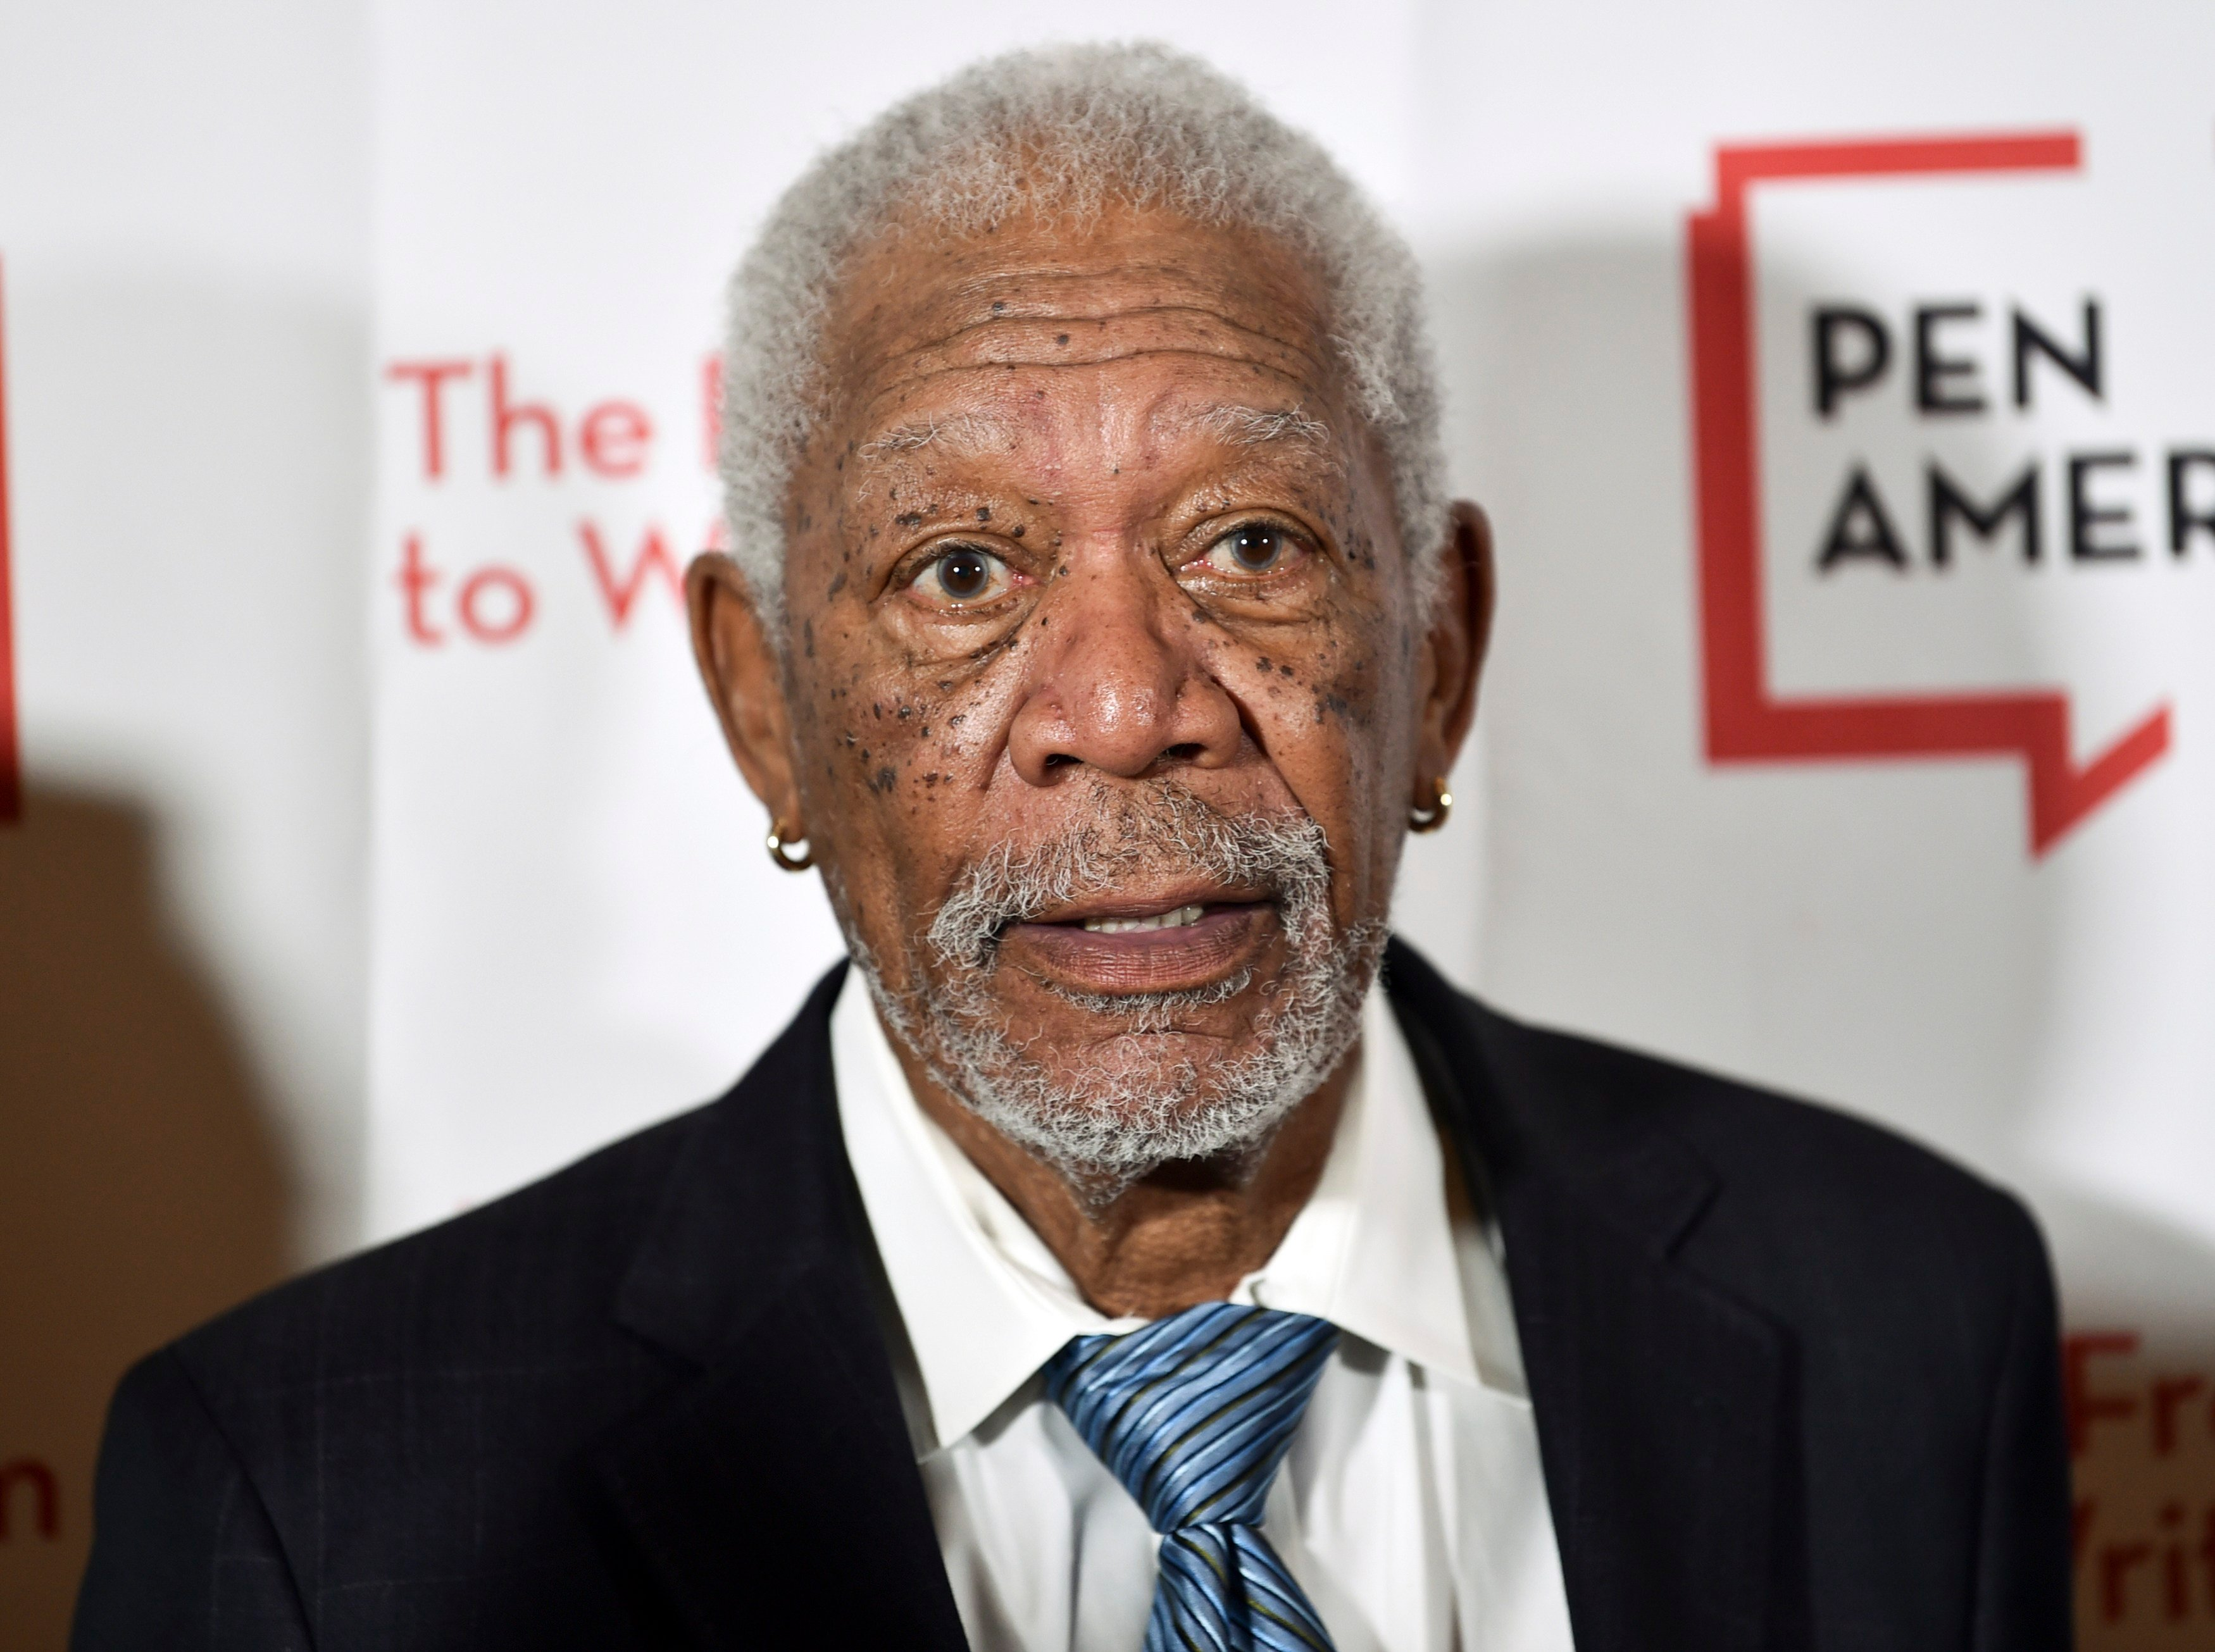 Actor Morgan Freeman attends the 2018 PEN Literary Gala at the American Museum of Natural History on Tuesday, May 22, 2018, in New York. (Photo by Evan Agostini/Invision/AP)